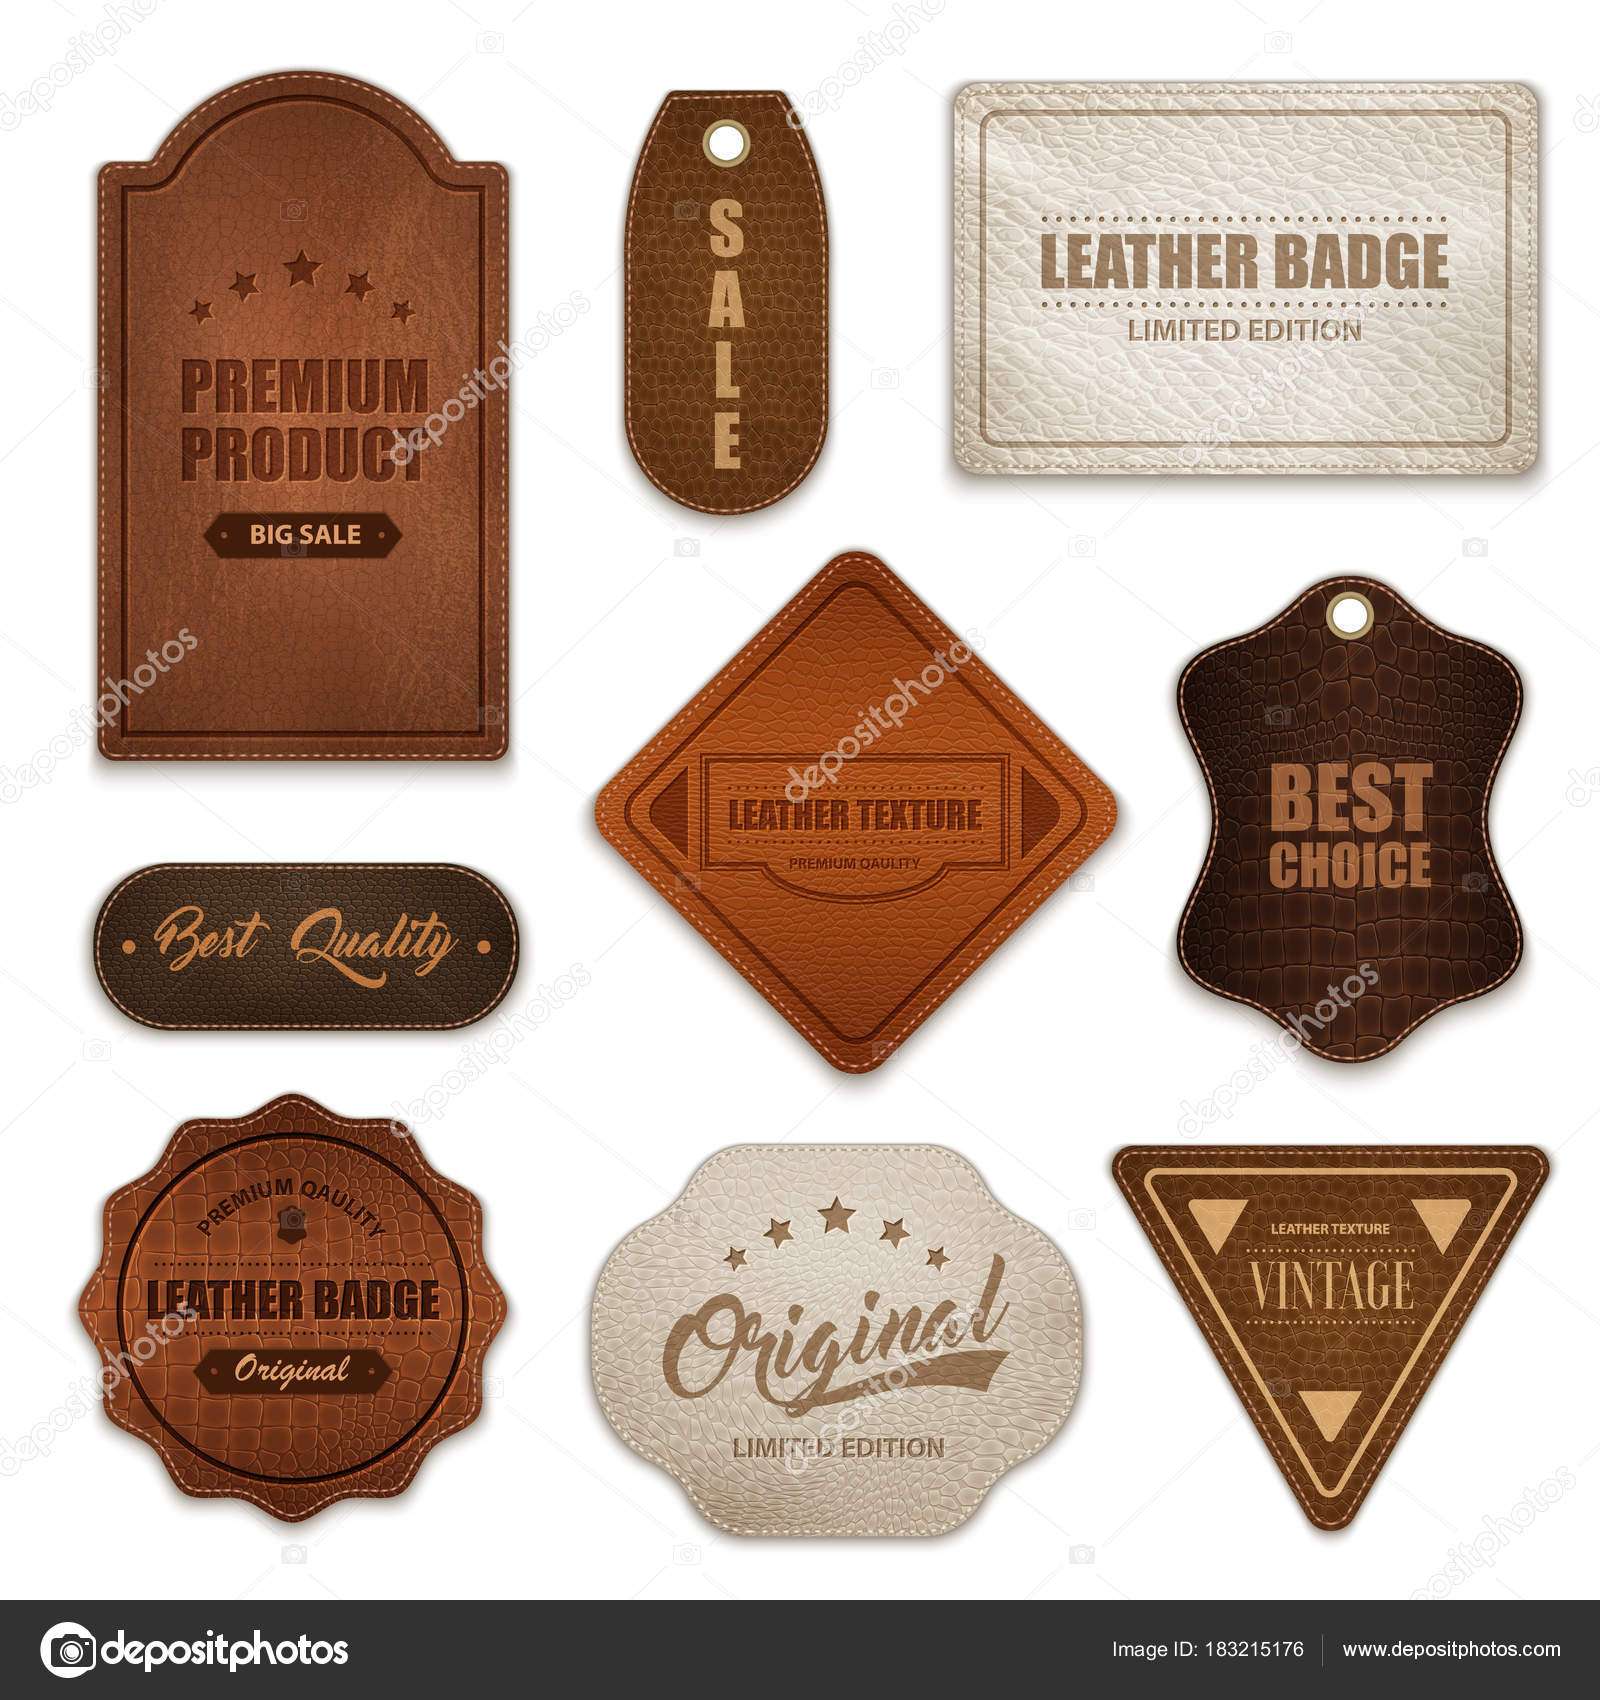 realistic leather badges labels collection stock vector c macrovector 183215176 https depositphotos com 183215176 stock illustration realistic leather badges labels collection html